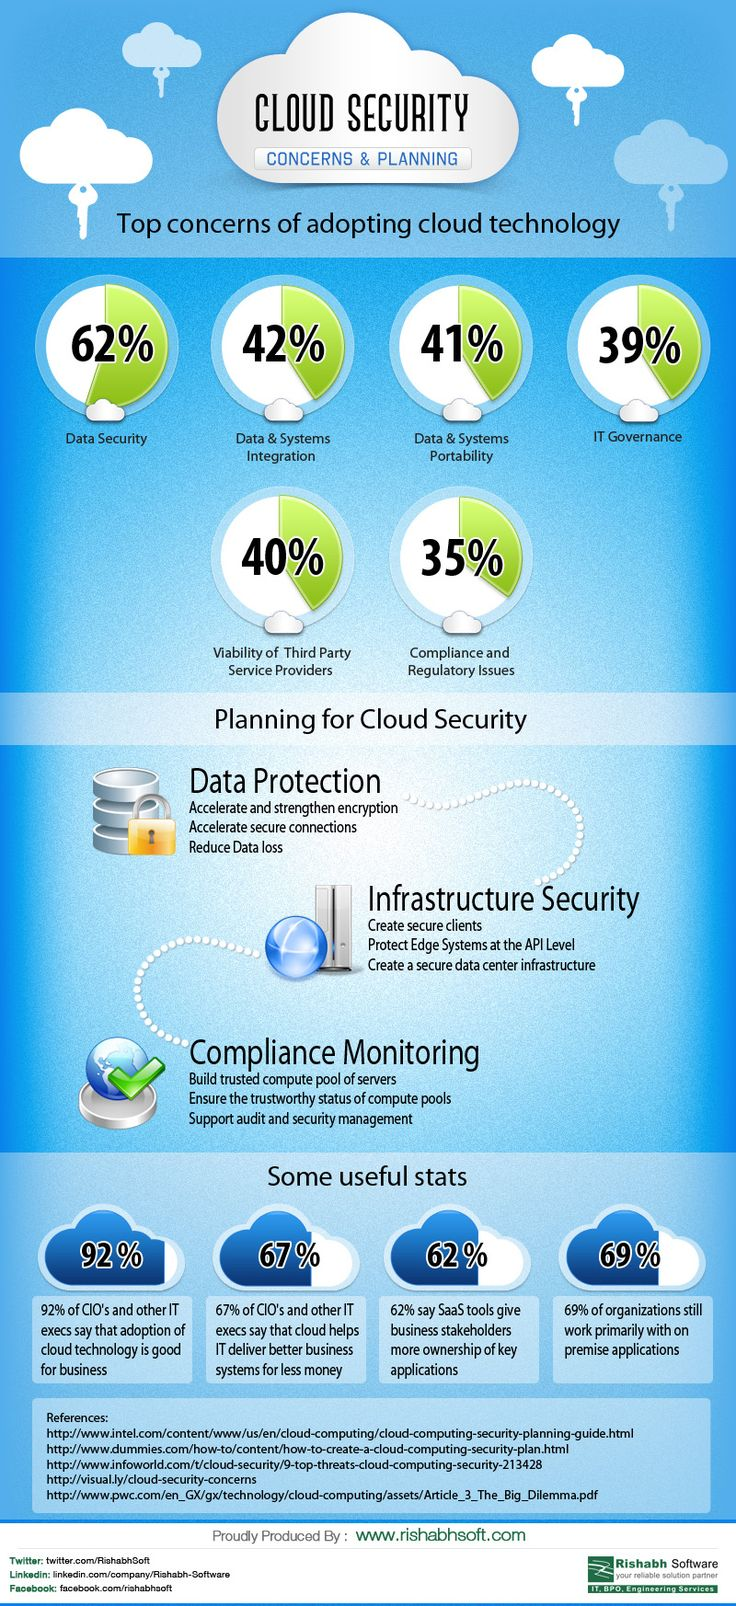 Cloud Security: Concerns and Planning [INFOGRAPHIC]